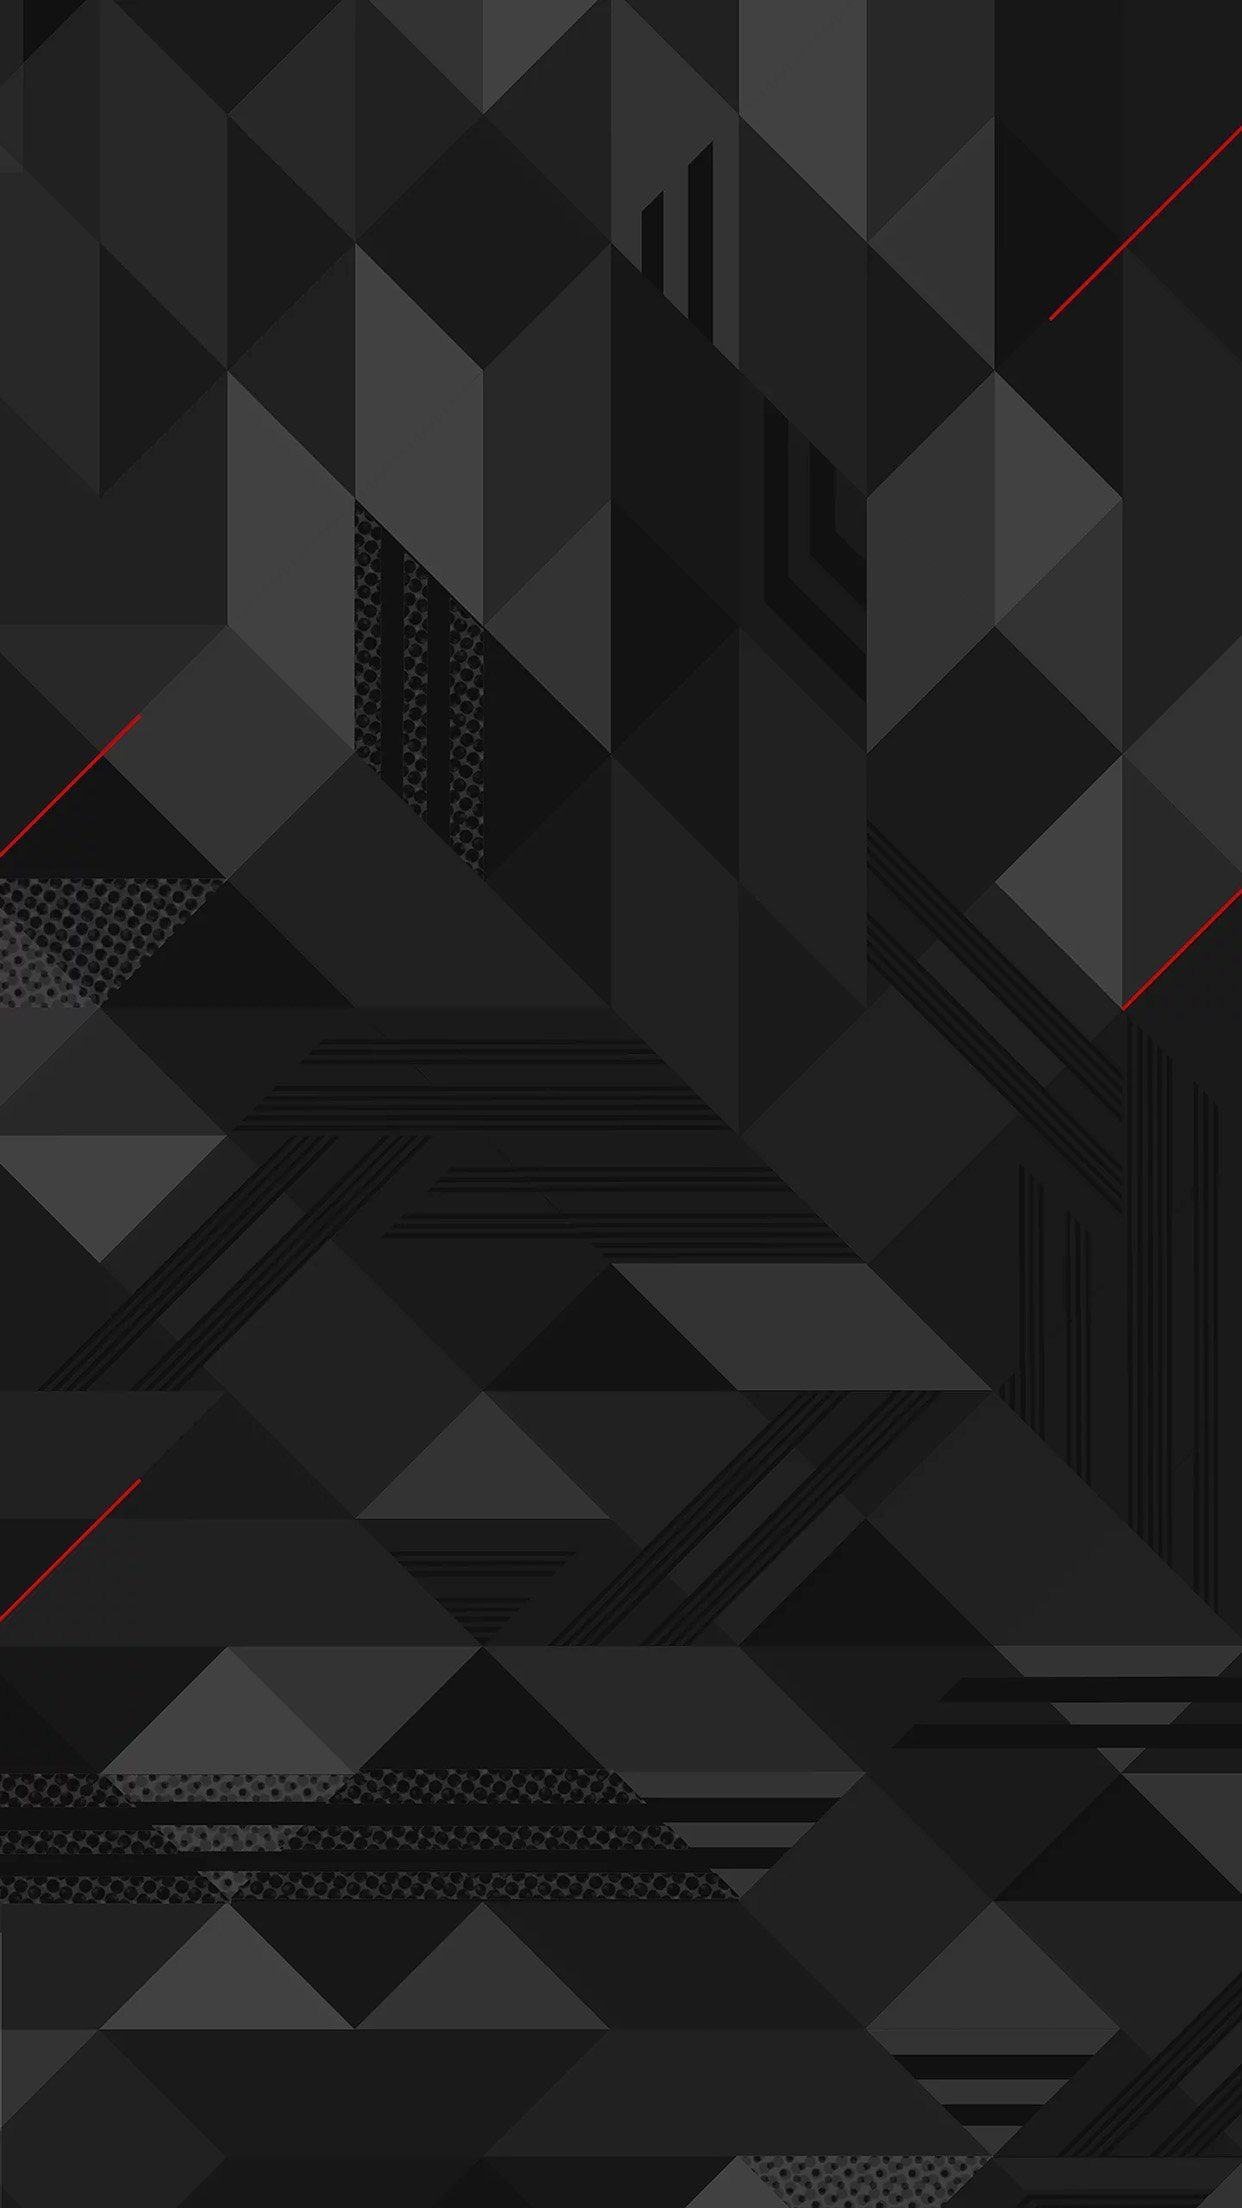 Dark Abstract Triangle Pattern Bw Android wallpaper